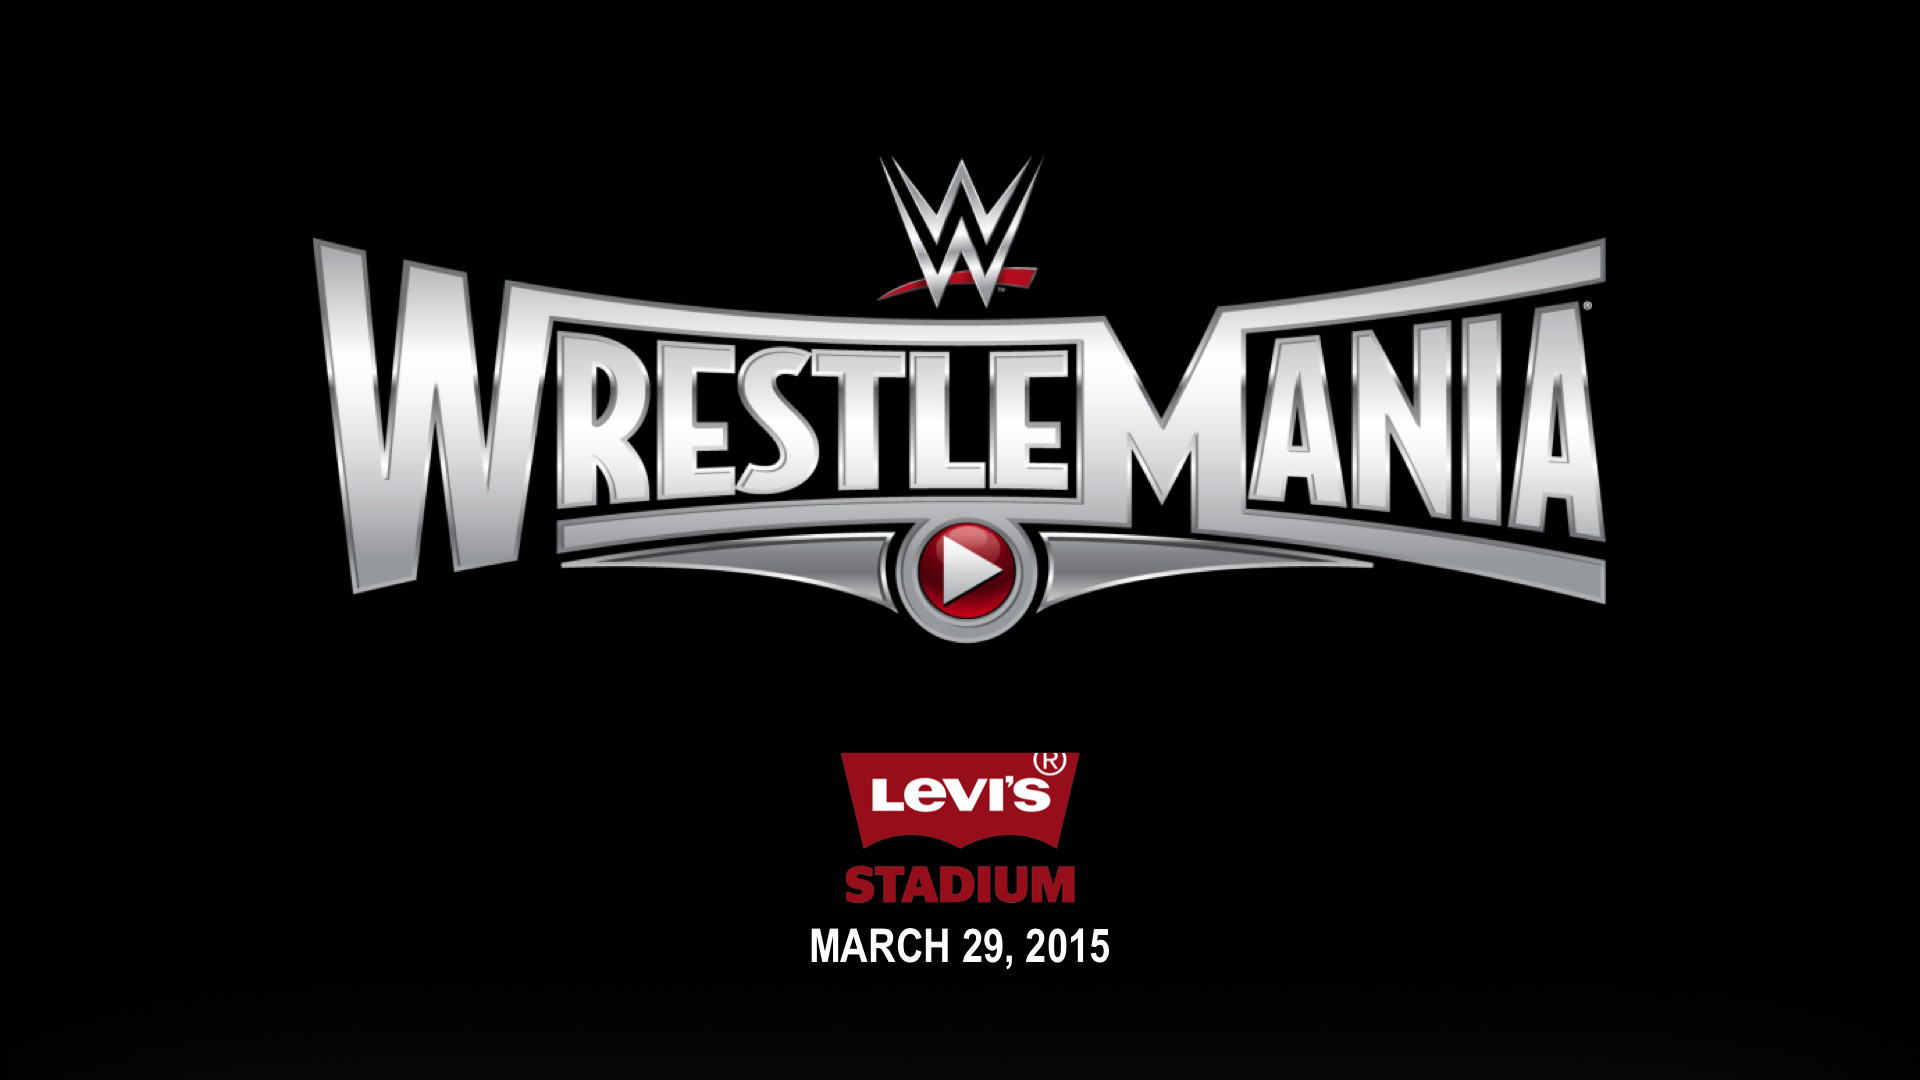 1920x1080  Wallpaper wrestlemania 31, wwe network, wrestlemania